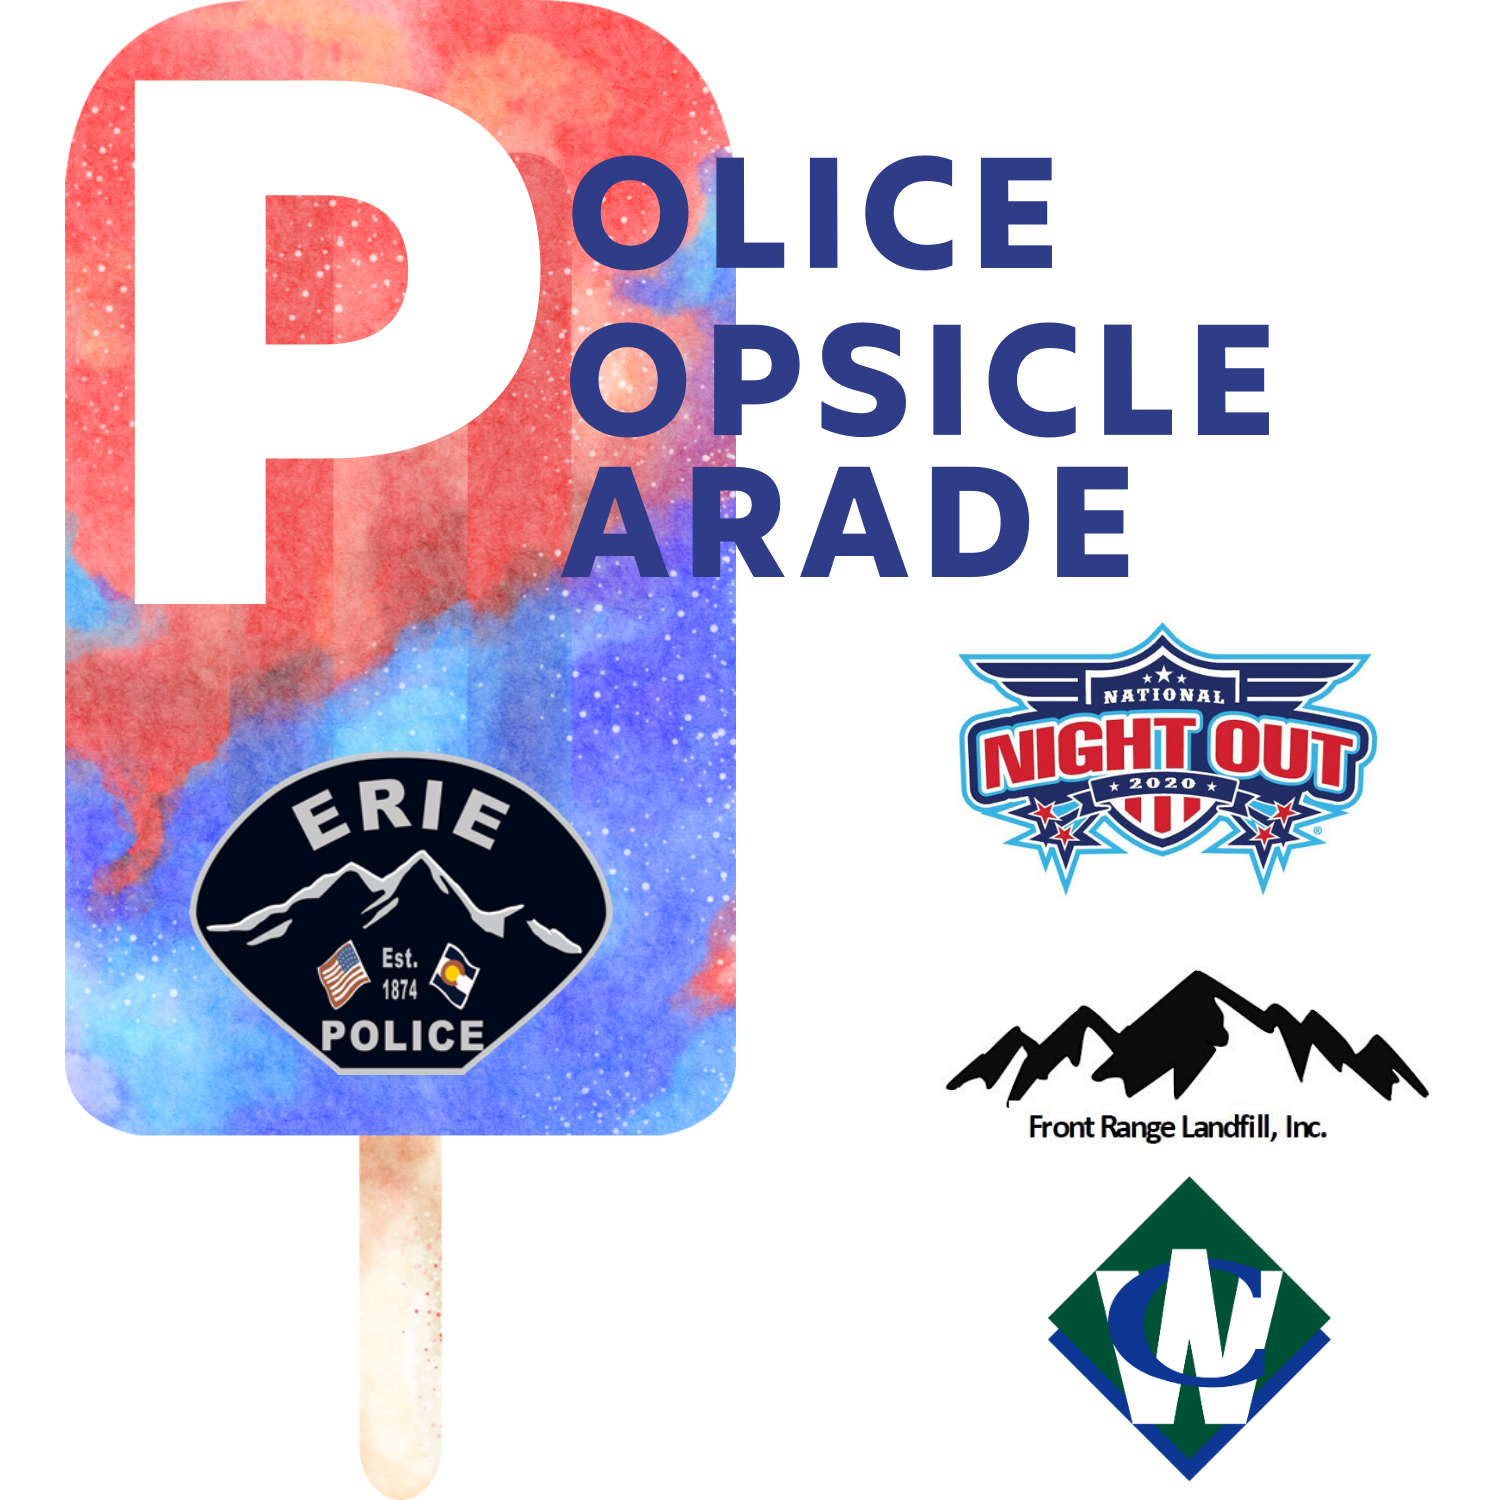 Police popsicle parade